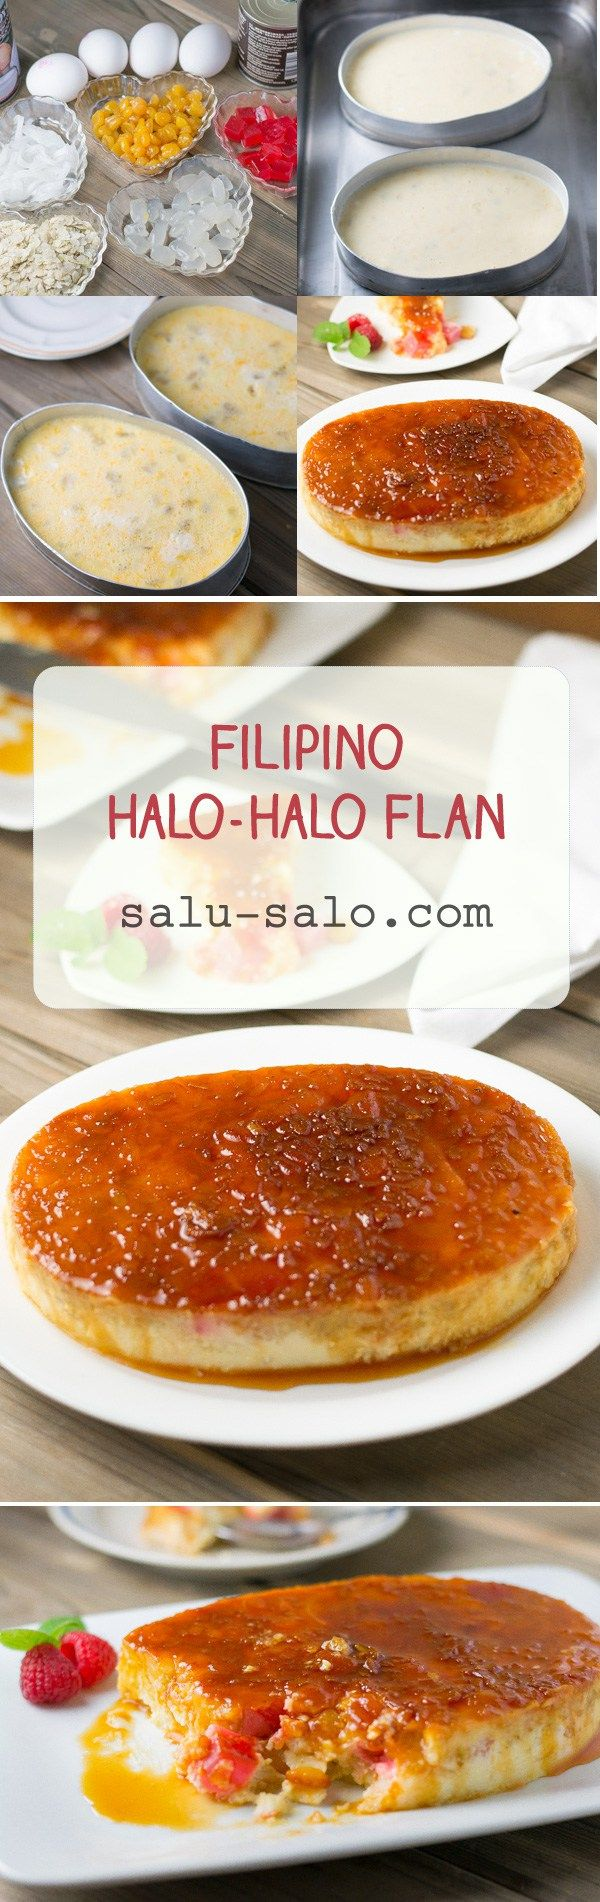 This halo halo flan recipe combines two favorite Filipino desserts: leche flan (caramel custard) and halo-halo (sweet fruits with shaved ice and milk).